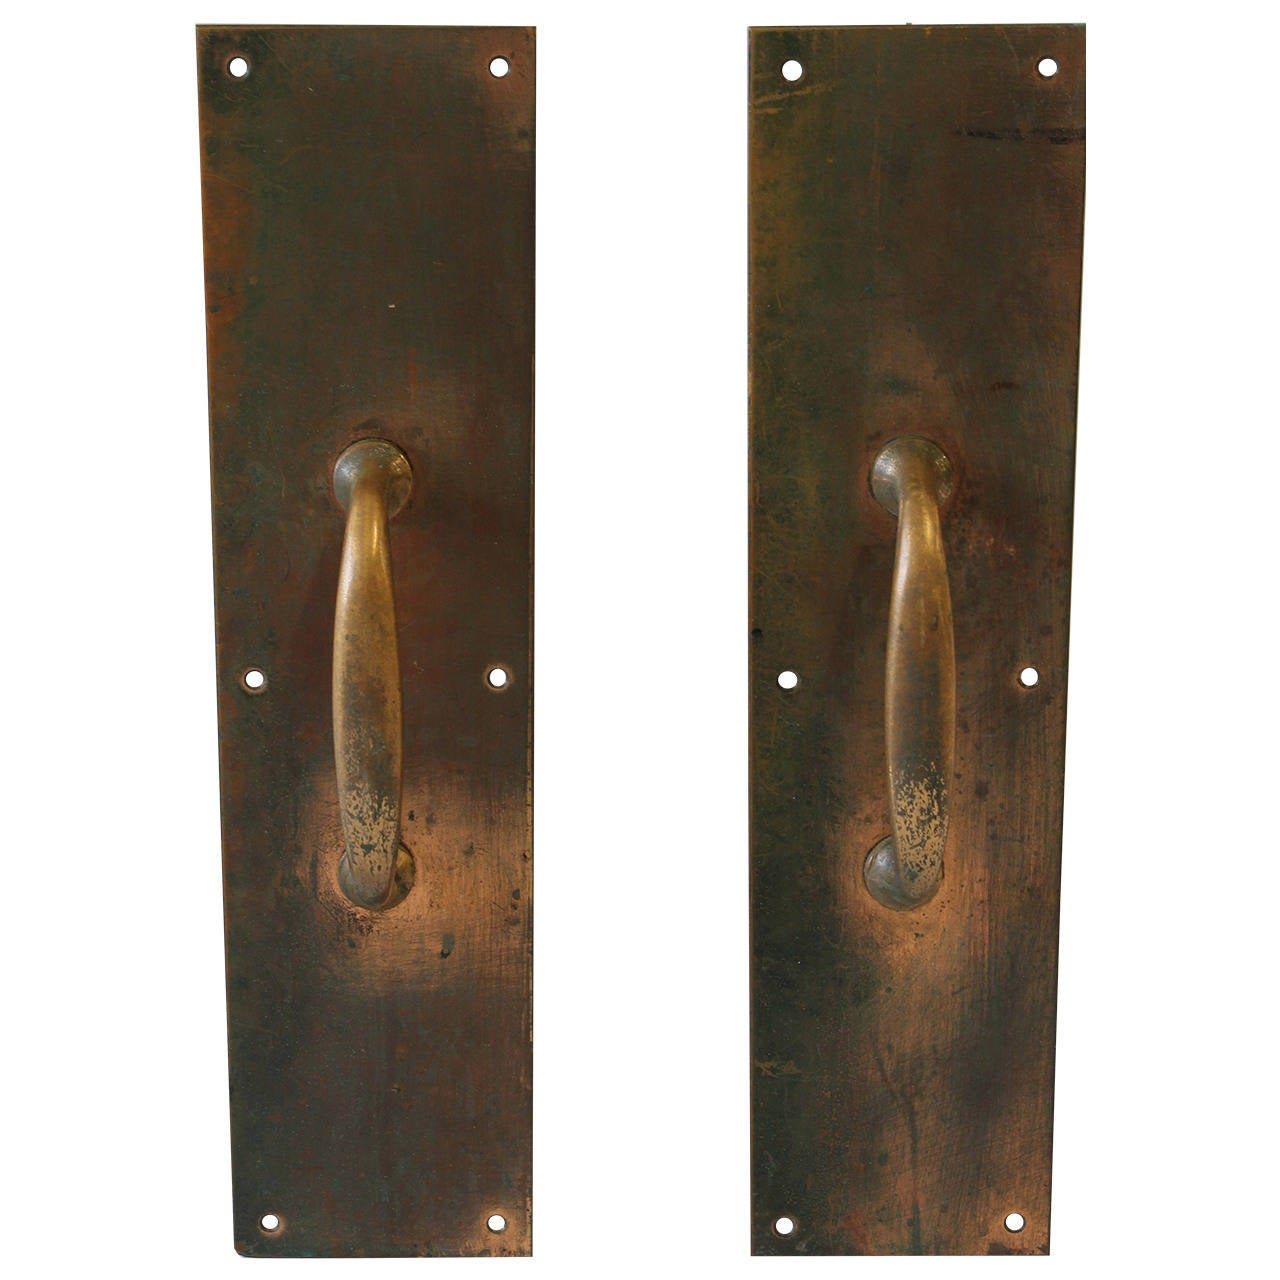 Antique Copper And Brass Entry Door Pull Hardware For Sale At 1stdibs